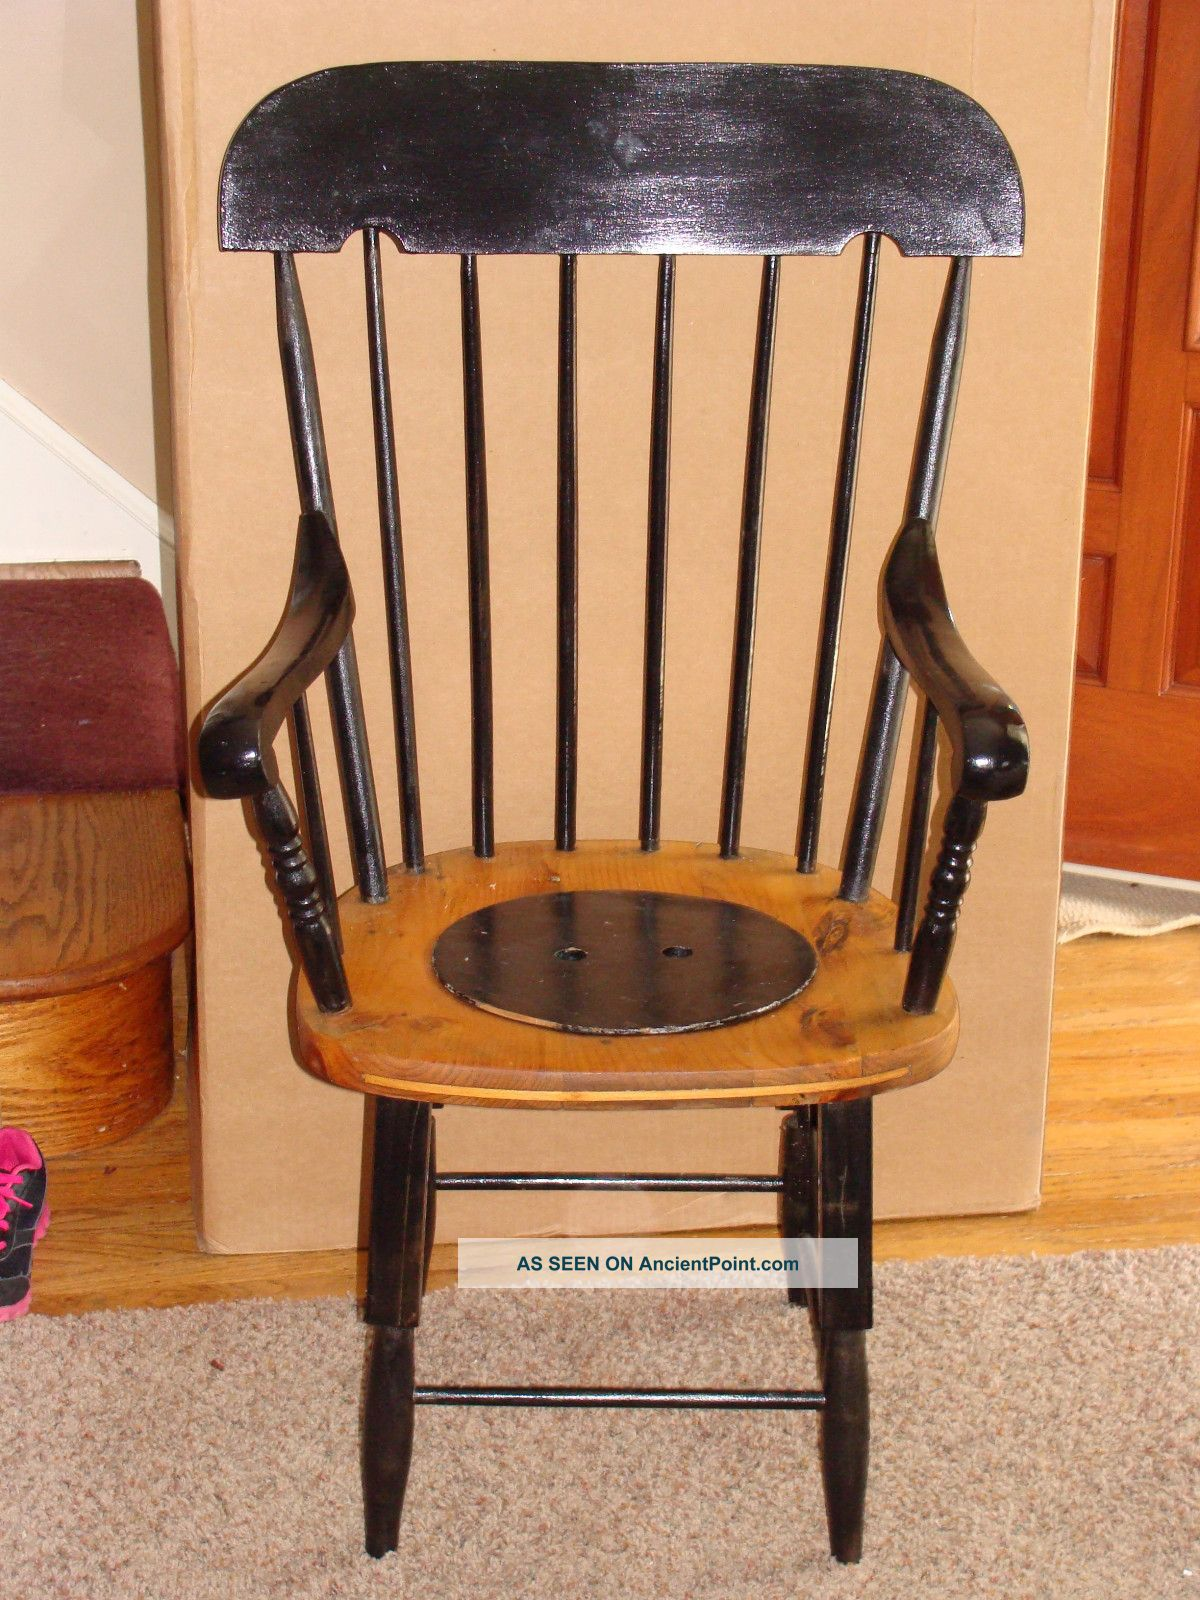 Antique wooden adult commode potty chair 1800 1899 photo